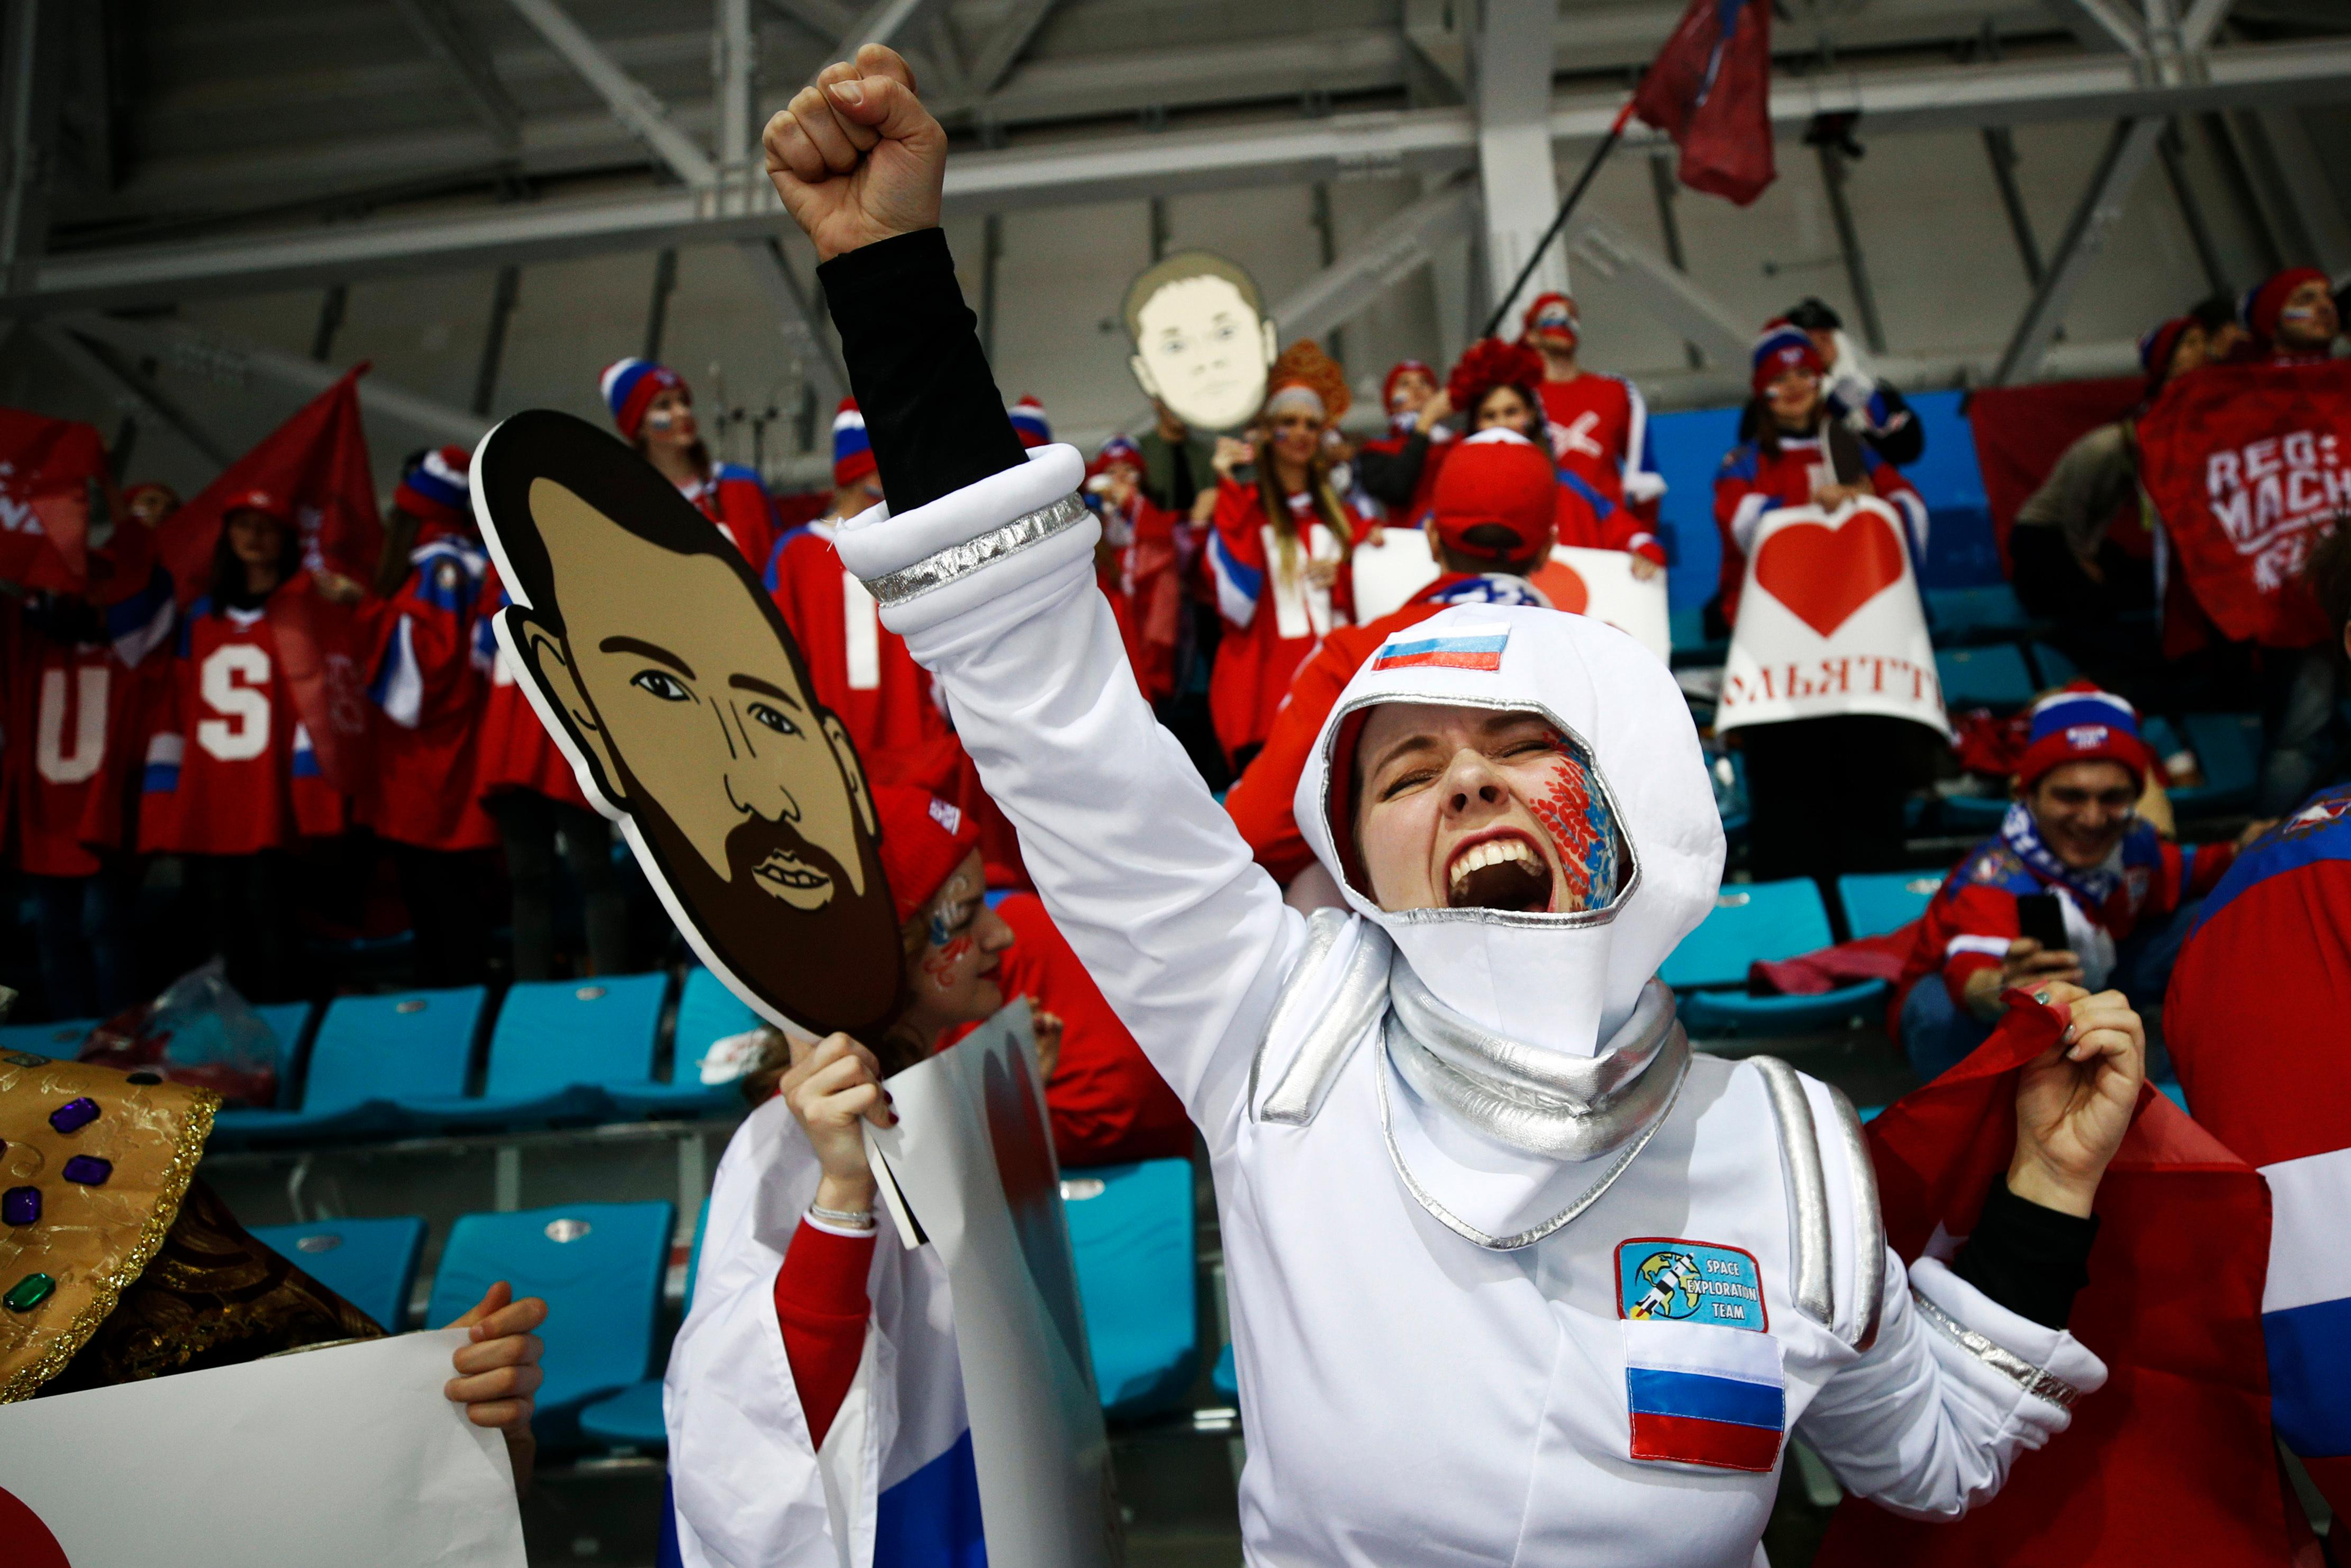 A fan of the Olympic athletes from Russia cheers before the men's gold medal hockey game against Germany at the 2018 Winter Olympics, Sunday, Feb. 25, 2018, in Gangneung, South Korea. (AP Photo/Jae C. Hong)